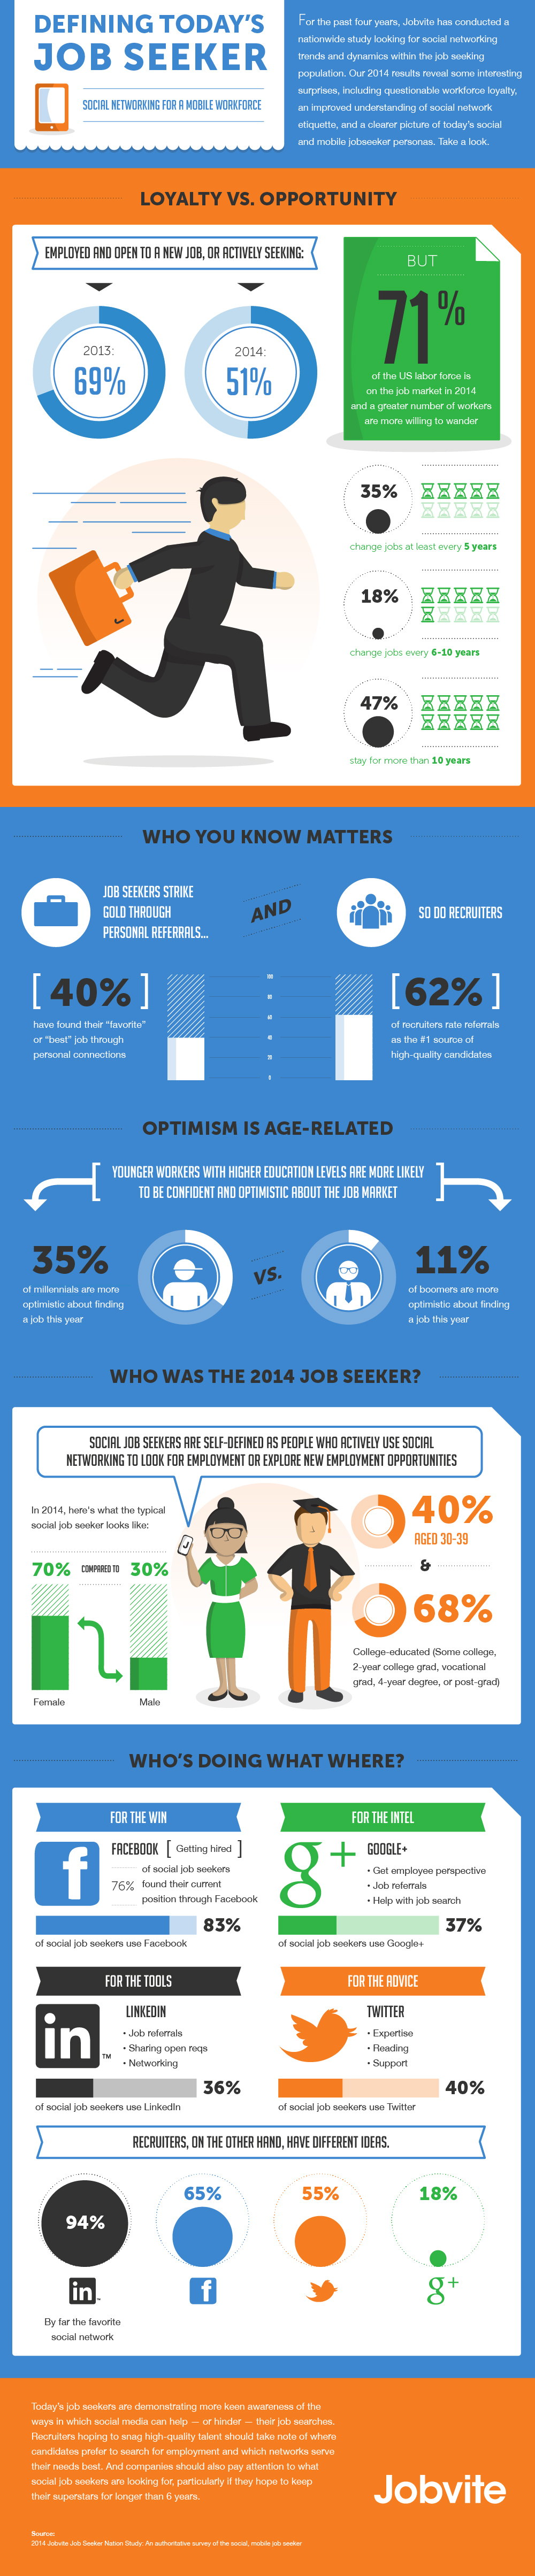 How Job Seekers Use Social Media and Mobile in 2014 [INFOGRAPHIC]